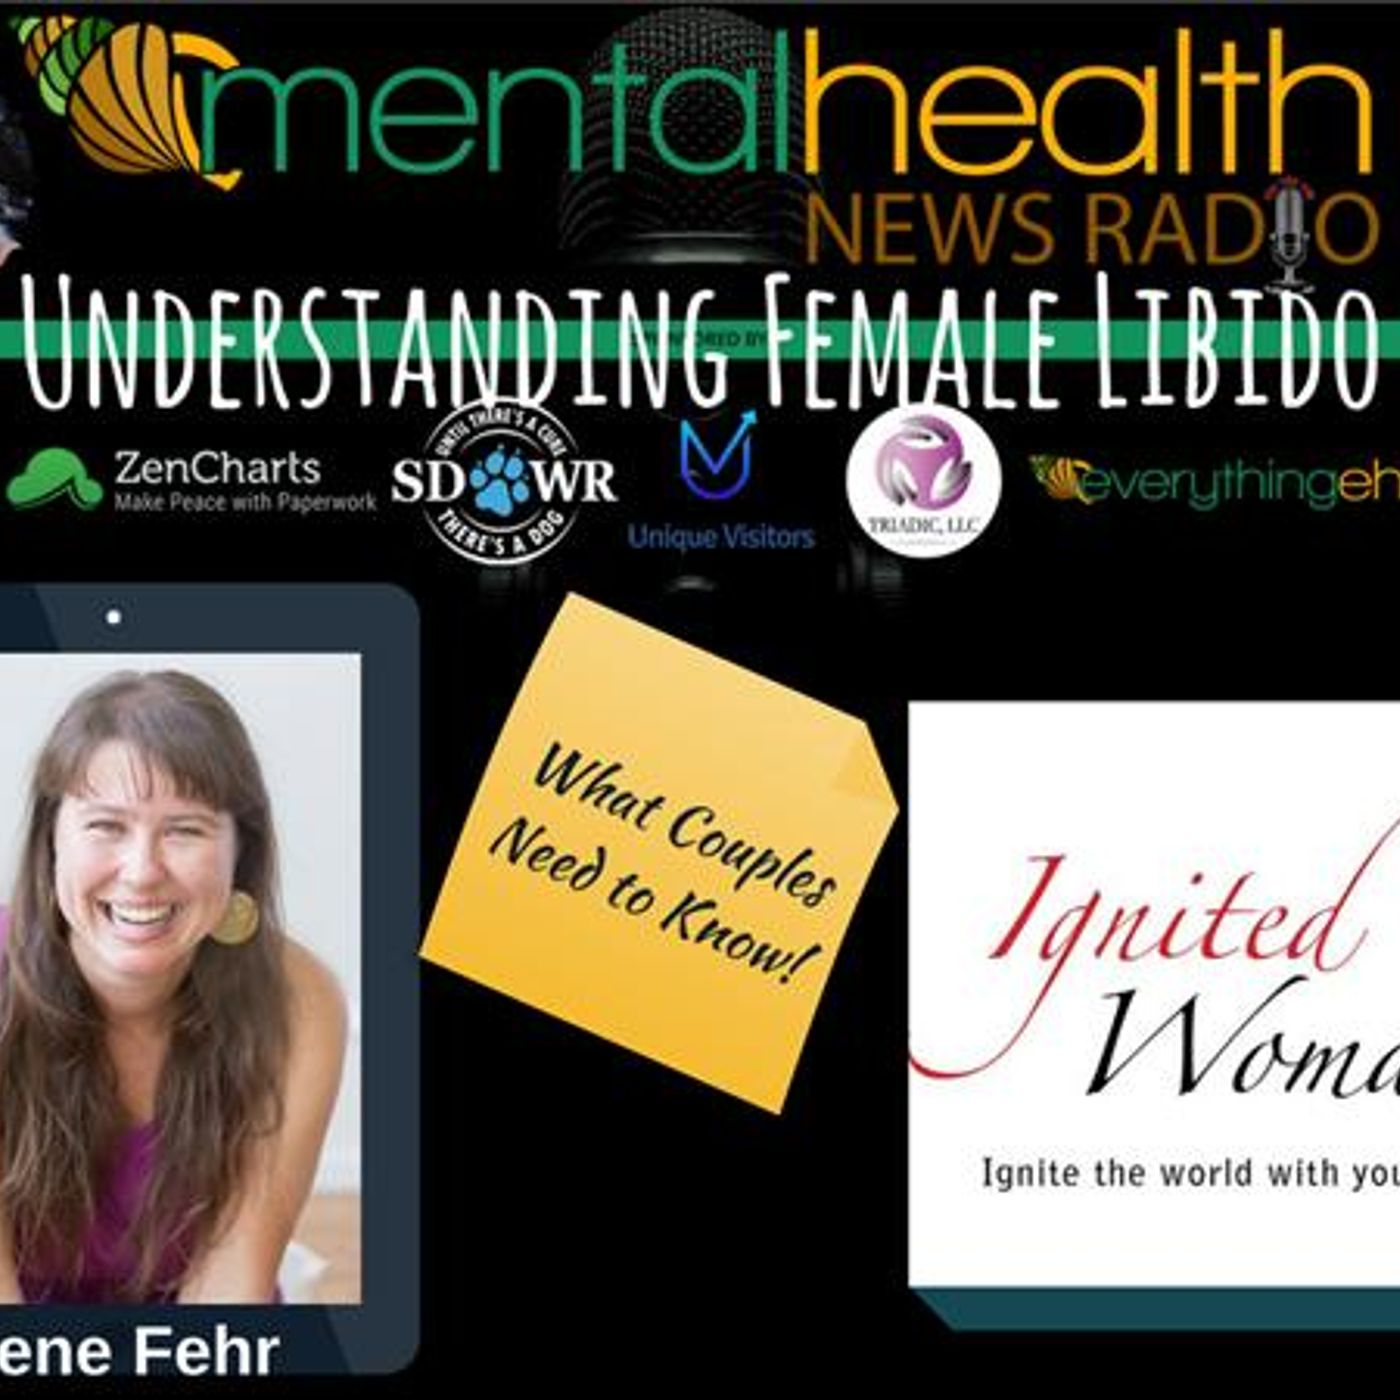 Mental Health News Radio - Understanding Female Libido: What Couples Need to Know with Irene Fehr